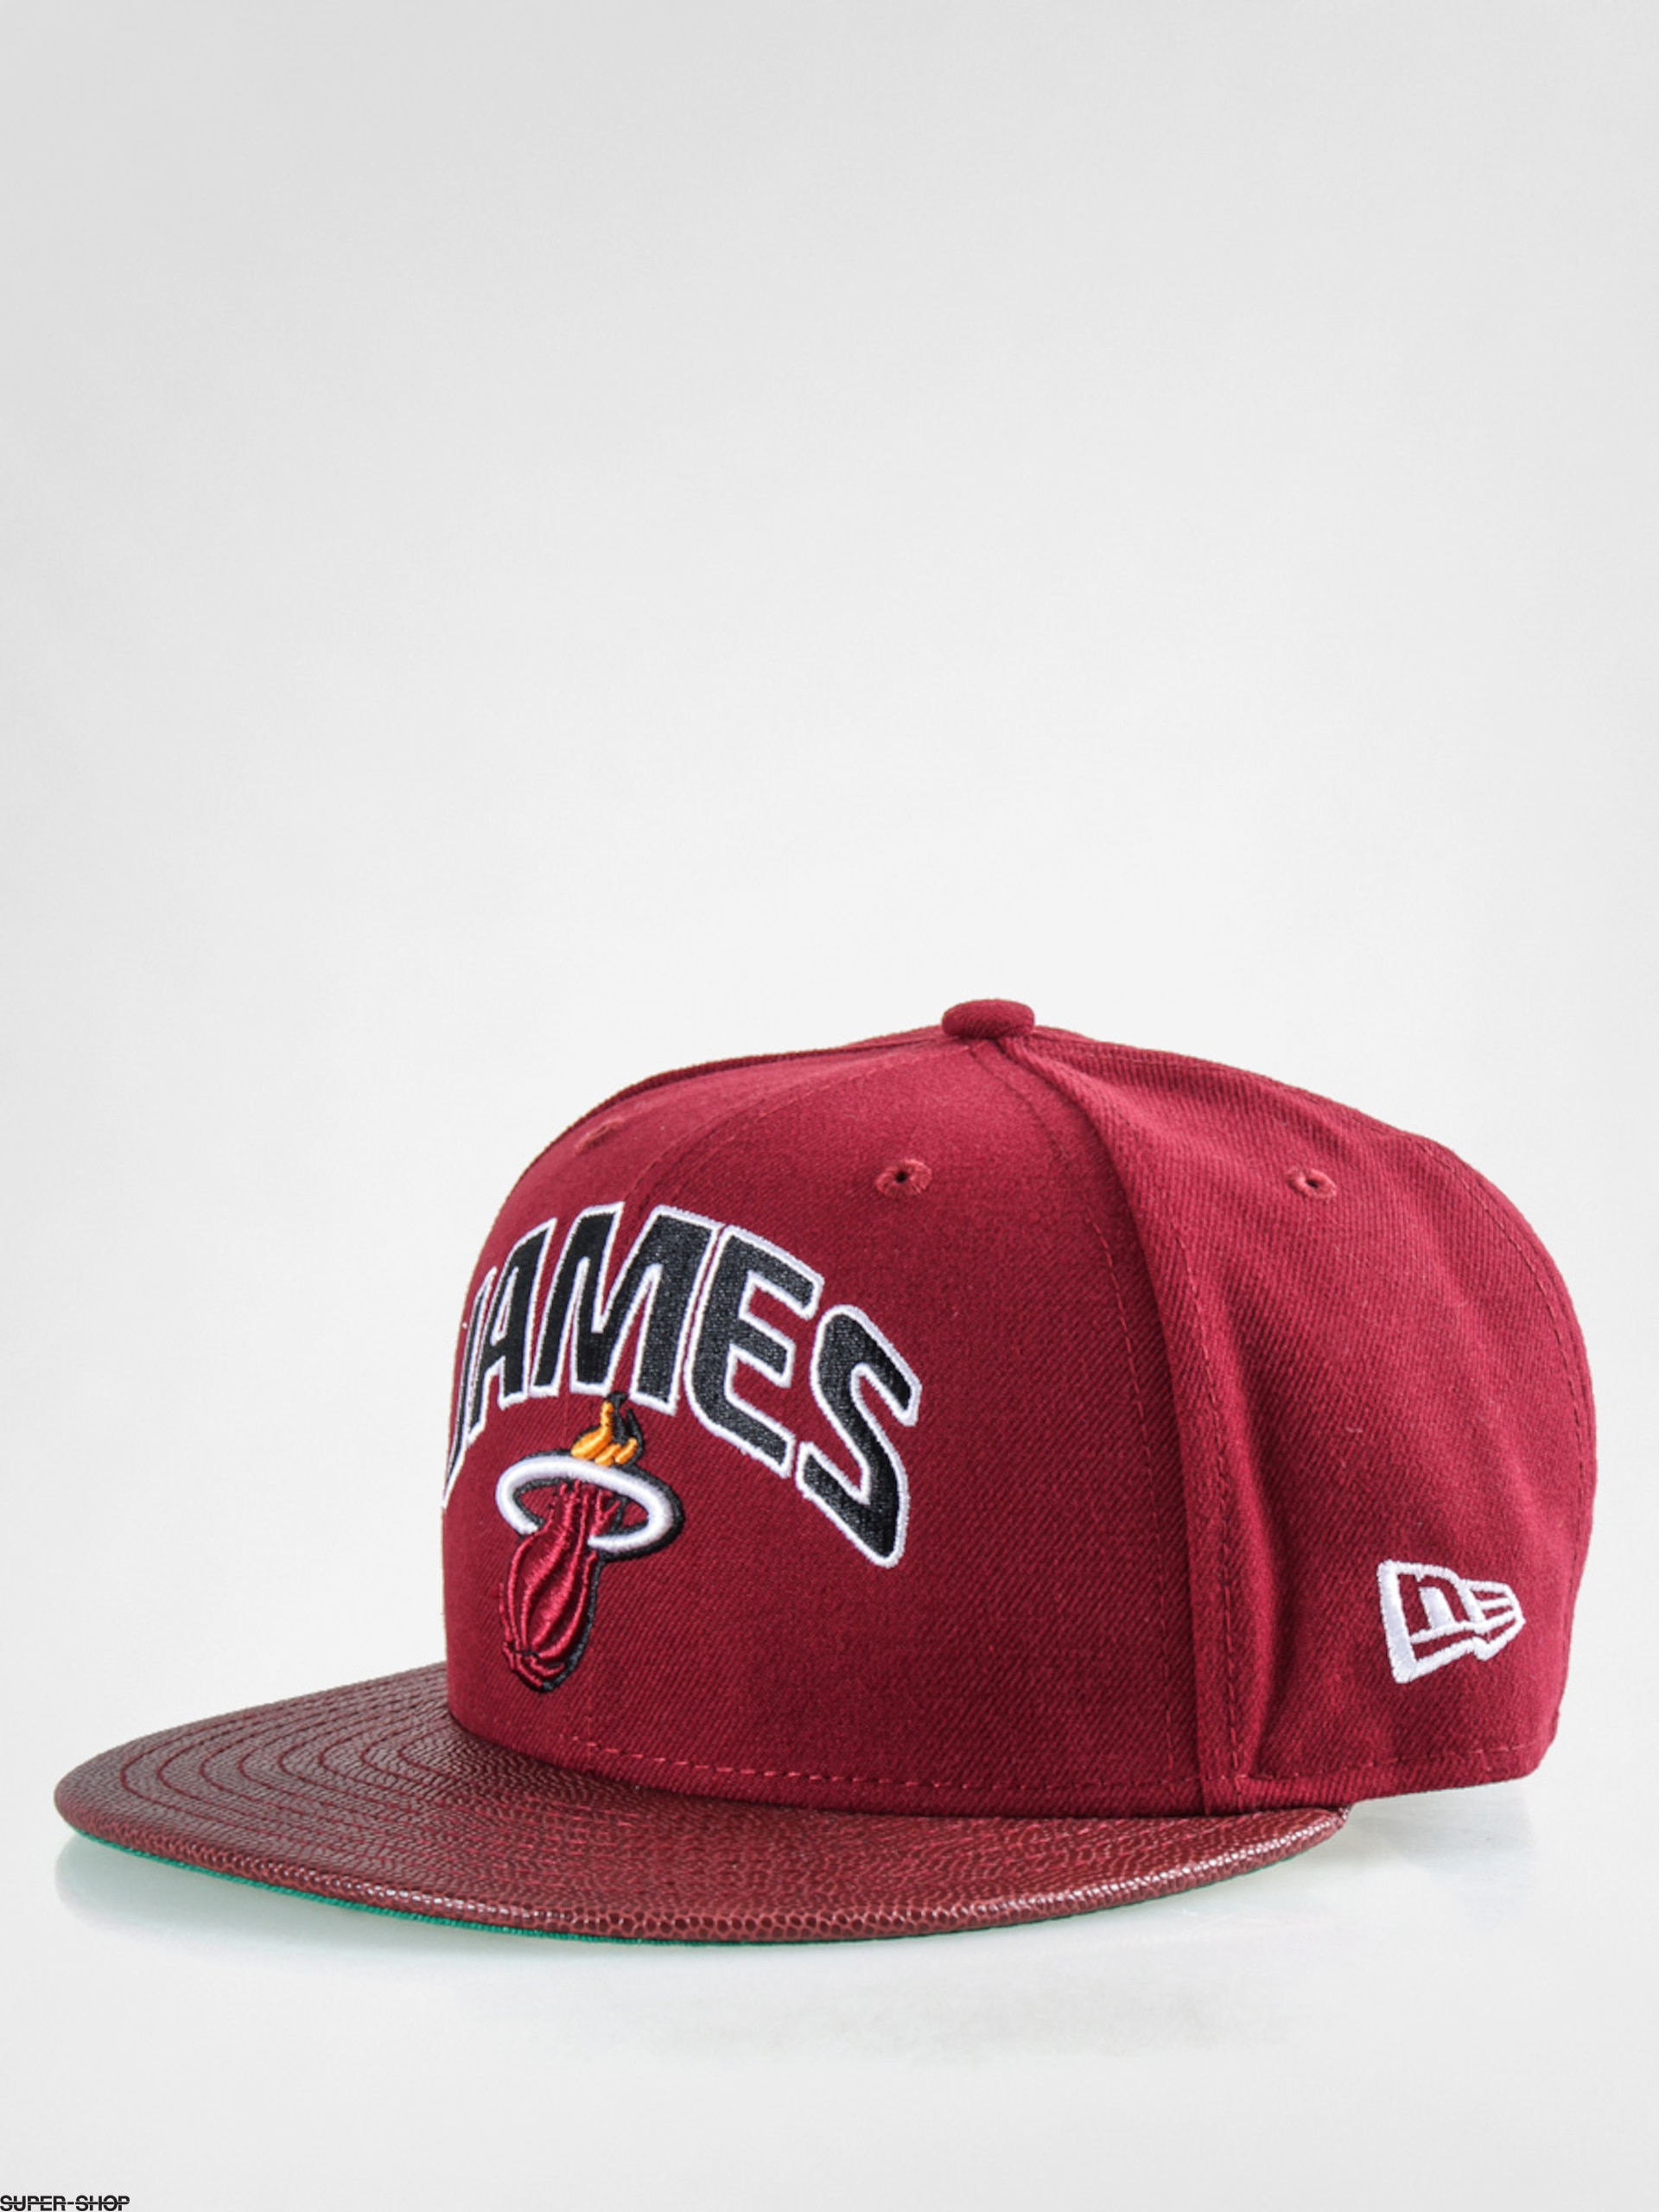 New Era Cap NBA Players Miami Heat James ZD (burgundy)